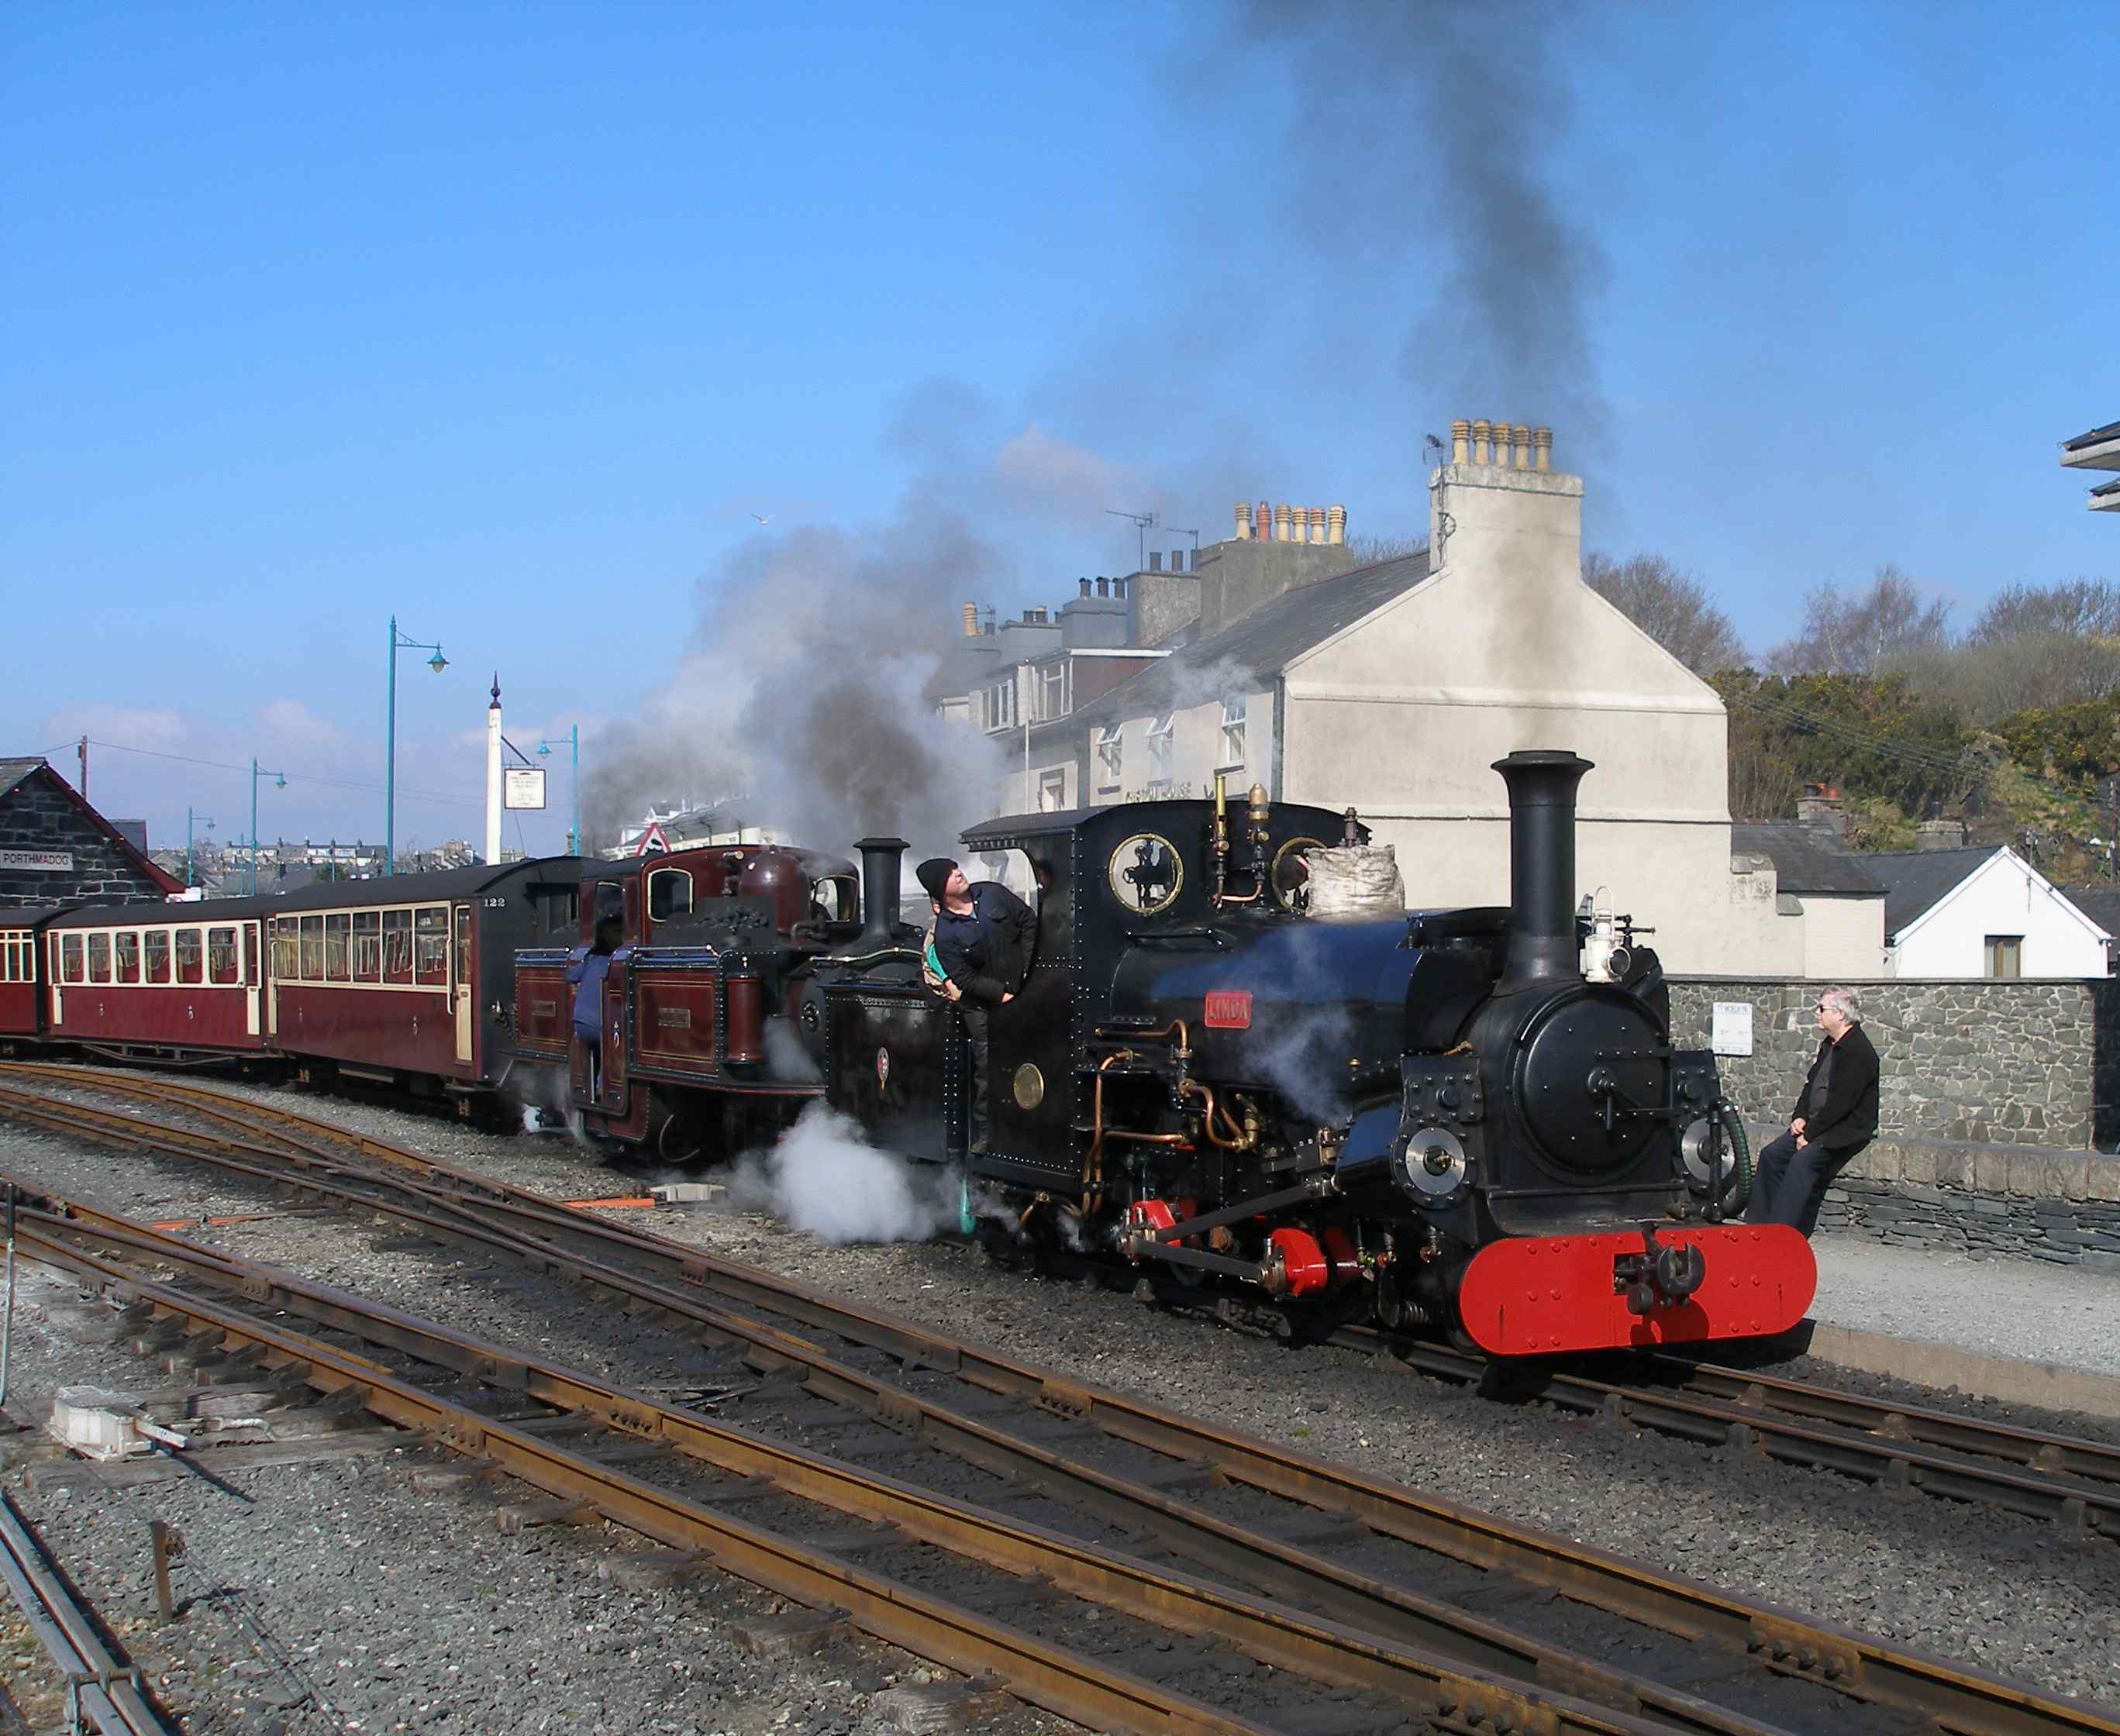 'Linda' and 'Merddin Emrys' set off with the empty coaching stock (ecs) for Blaenau Ffestiniog. Both locos were converted to oil firing in the 1970s. This was undertaken as the railway's medium-sized locos had smaller grate areas that reflected their industrial origins ('Linda' and 'Blanche') and therefore were more prone to fire-throwing when worked hard - which was virtually all the time! 'Merddin Emrys' had a better ratio of grate to traffic effort and arguably was less prone to fire throwing and might have been better kept as a coal burner. It's conversion to coal required major work on its tanks, which at the time were virtually brand new. A second set of traditionally-styled tanks were made at the same time for 'Earl of Merioneth' but these have not yet been fitted, and these to will have to be modified for coal.